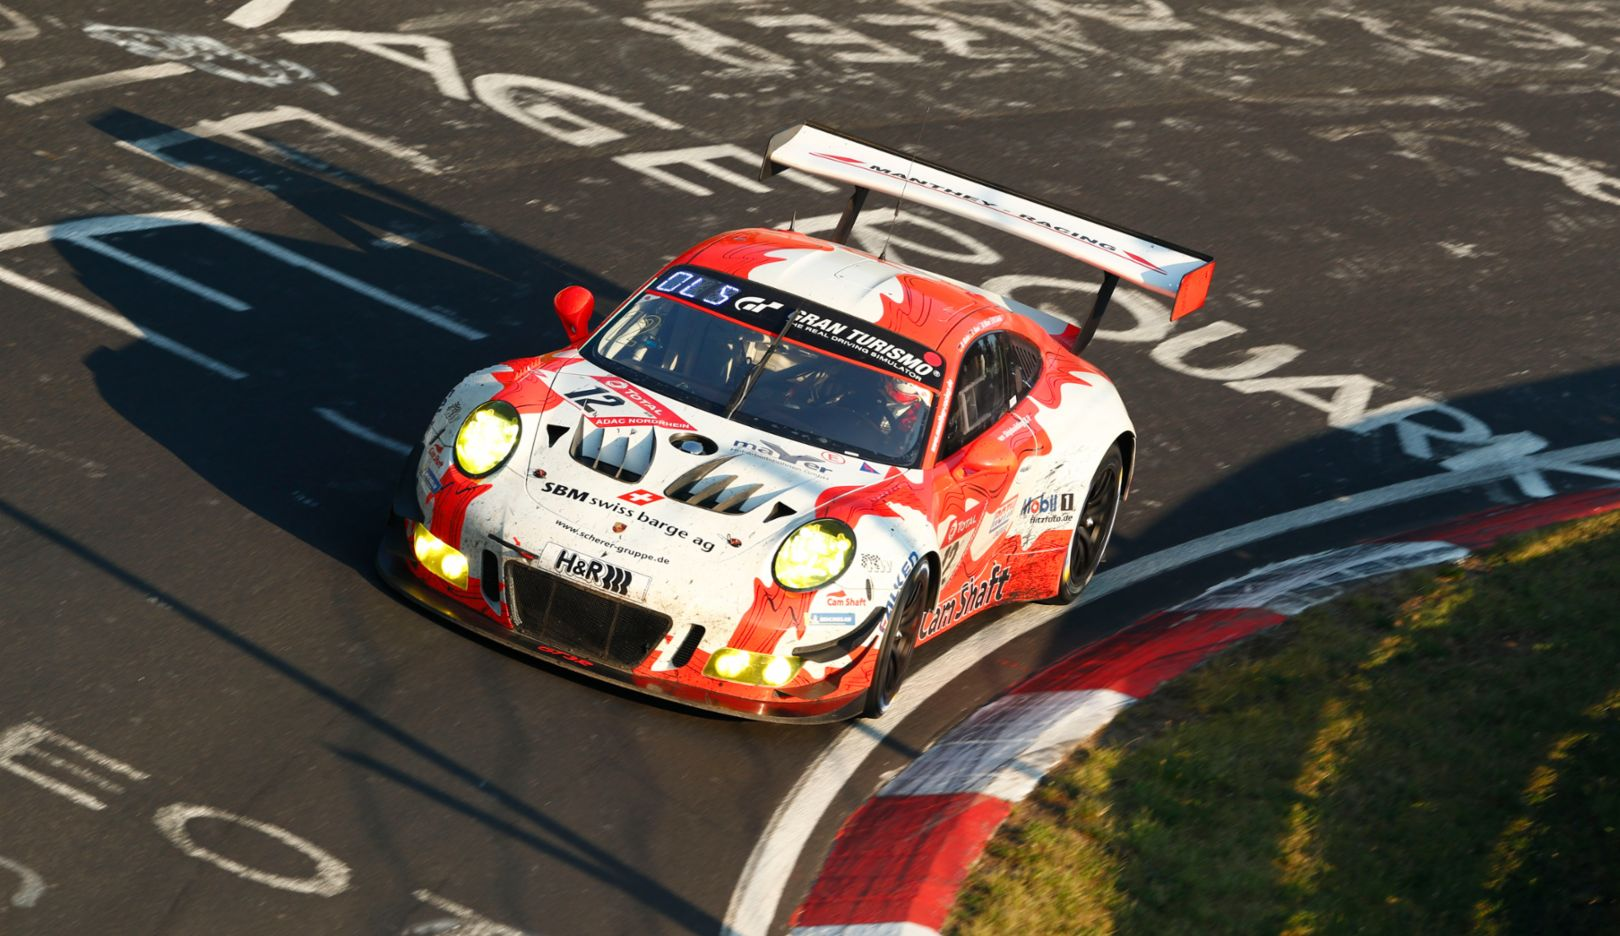 24h Nürburgring: Pro-Am class win at the 24-hour marathon